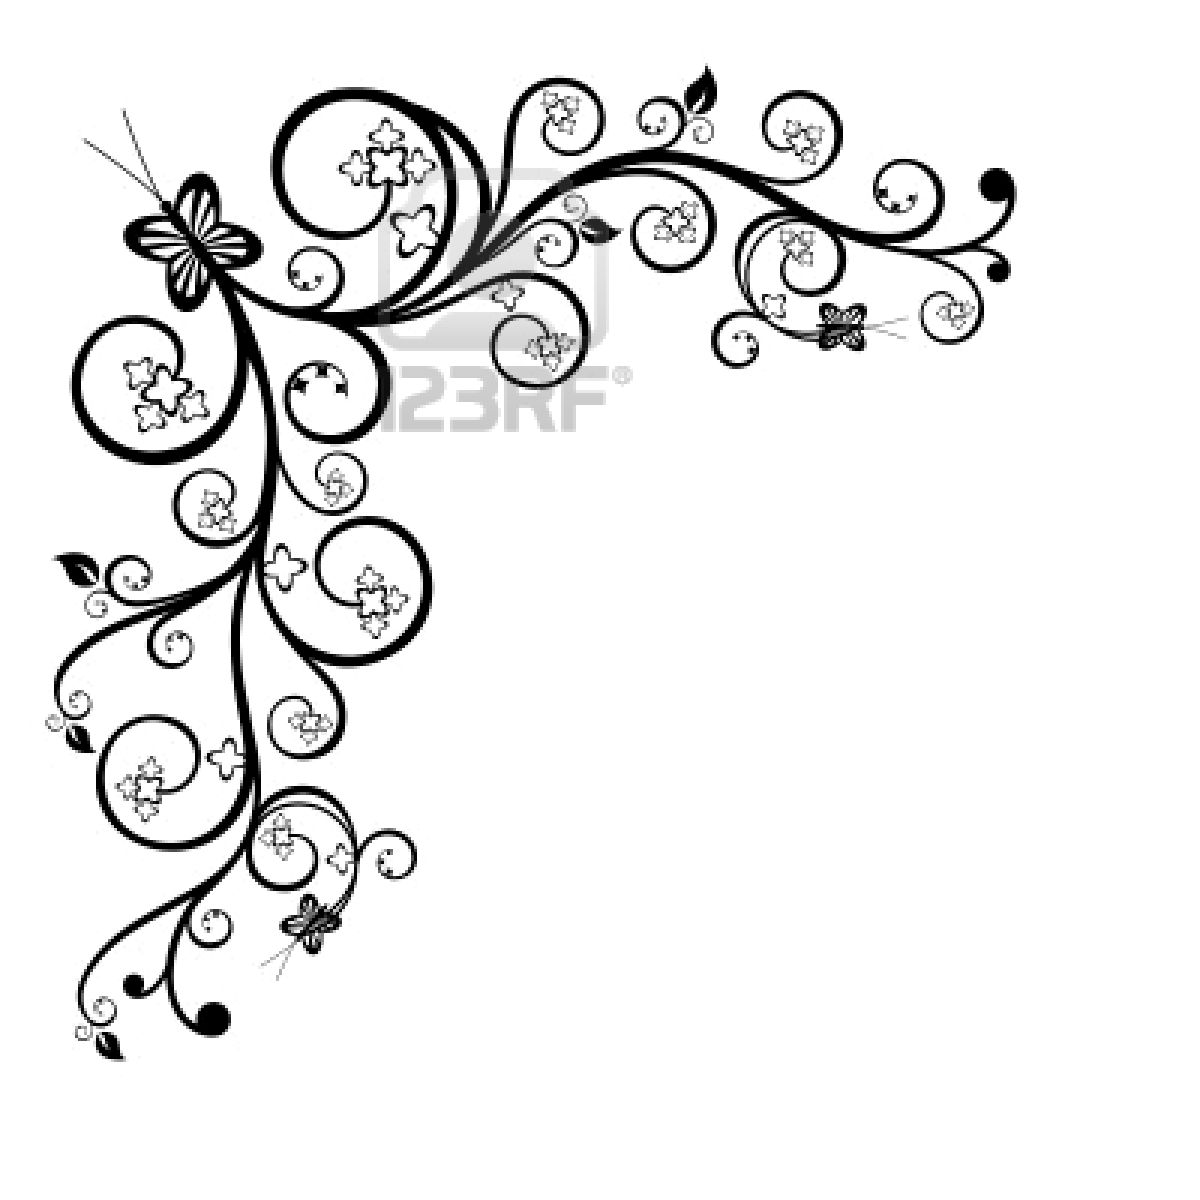 And White Heart Border Clipart Black And White Wallpaper Ever Cool